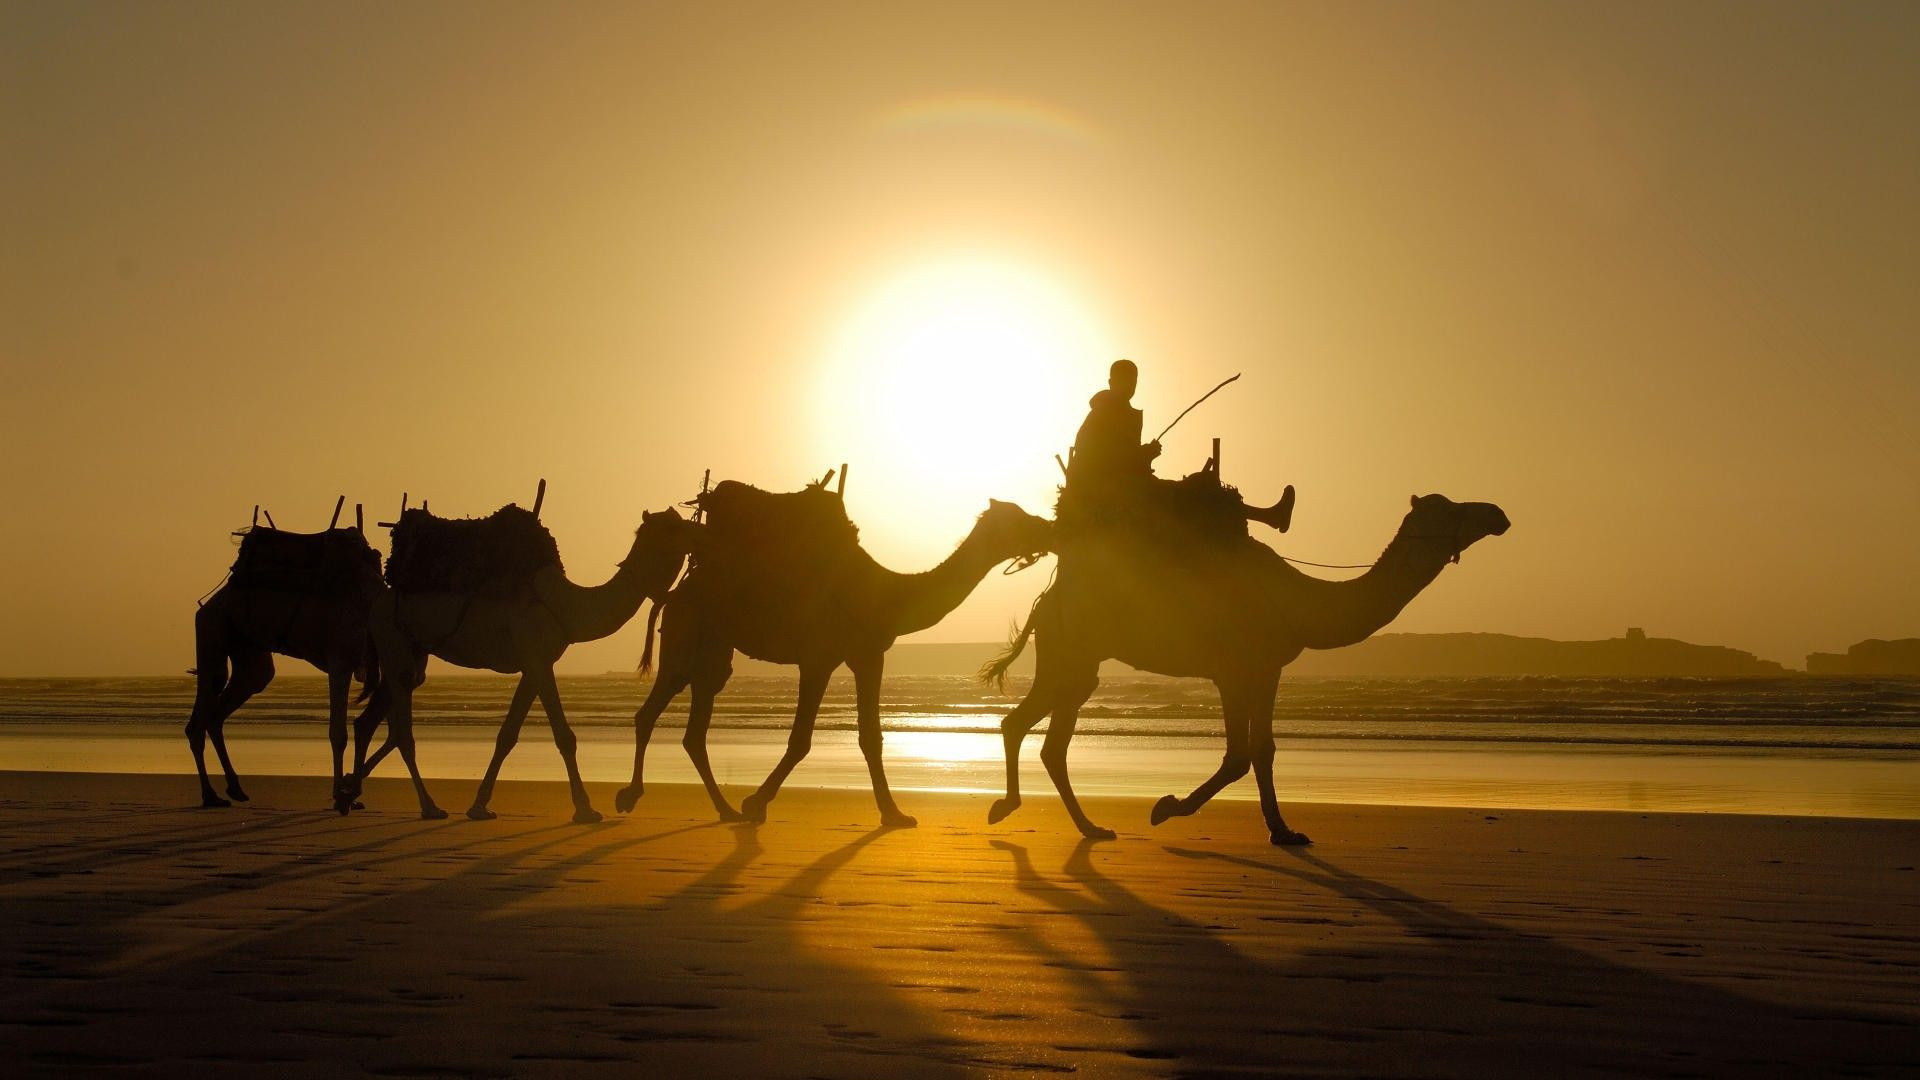 A Caravan Of Camels In The Desert Photo